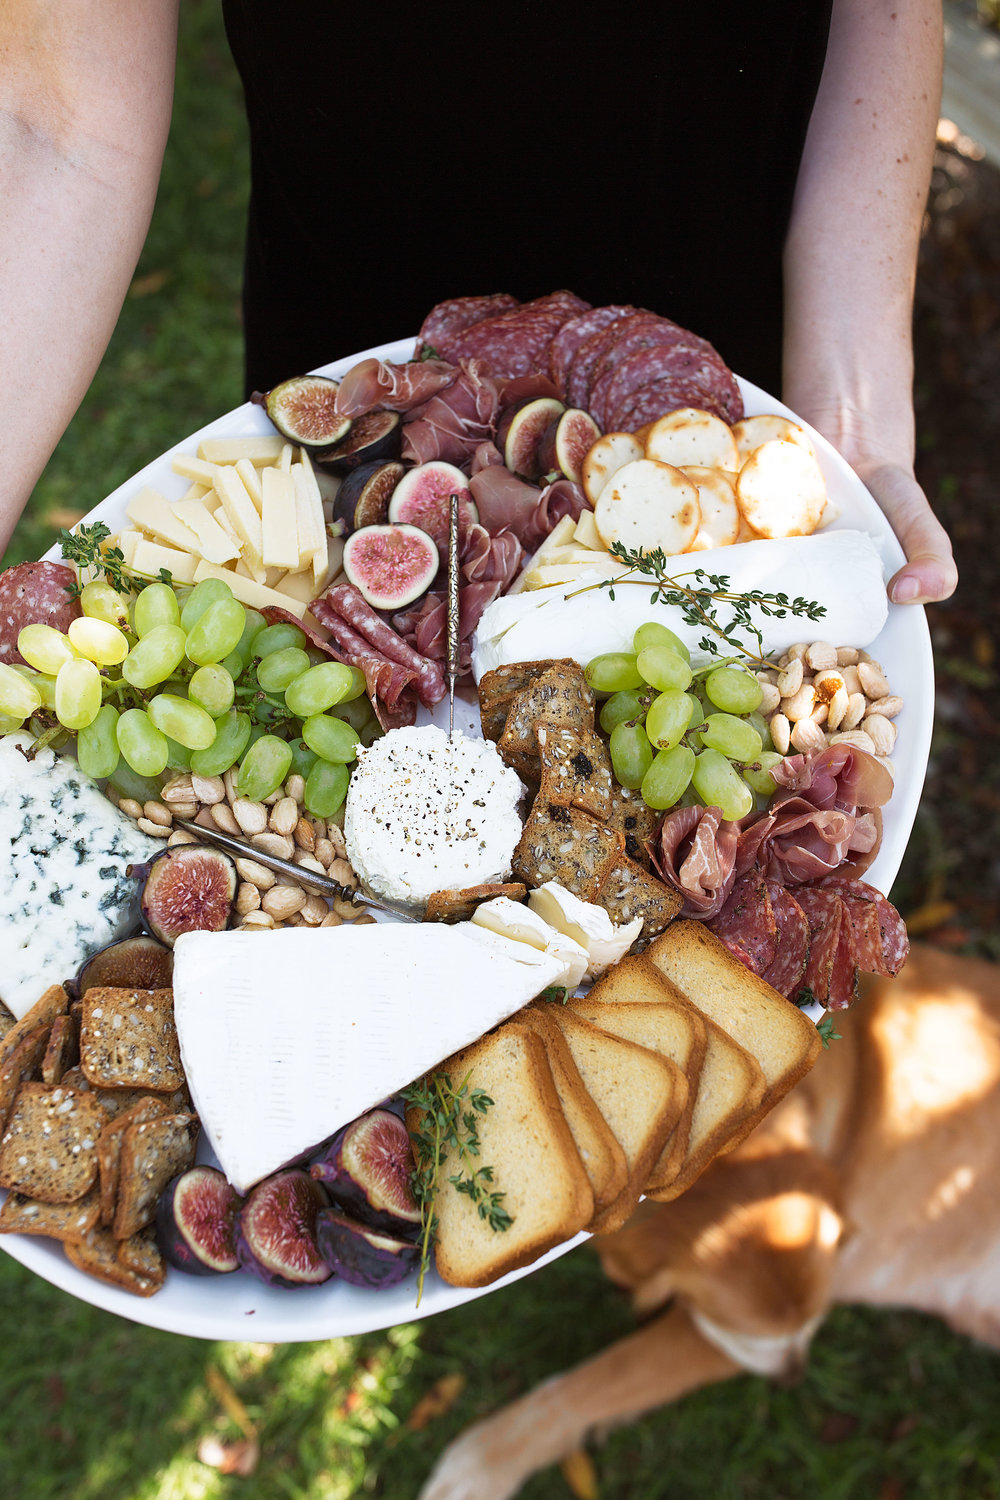 Create-dinner-no.-6-french-cheese-board-2.jpg